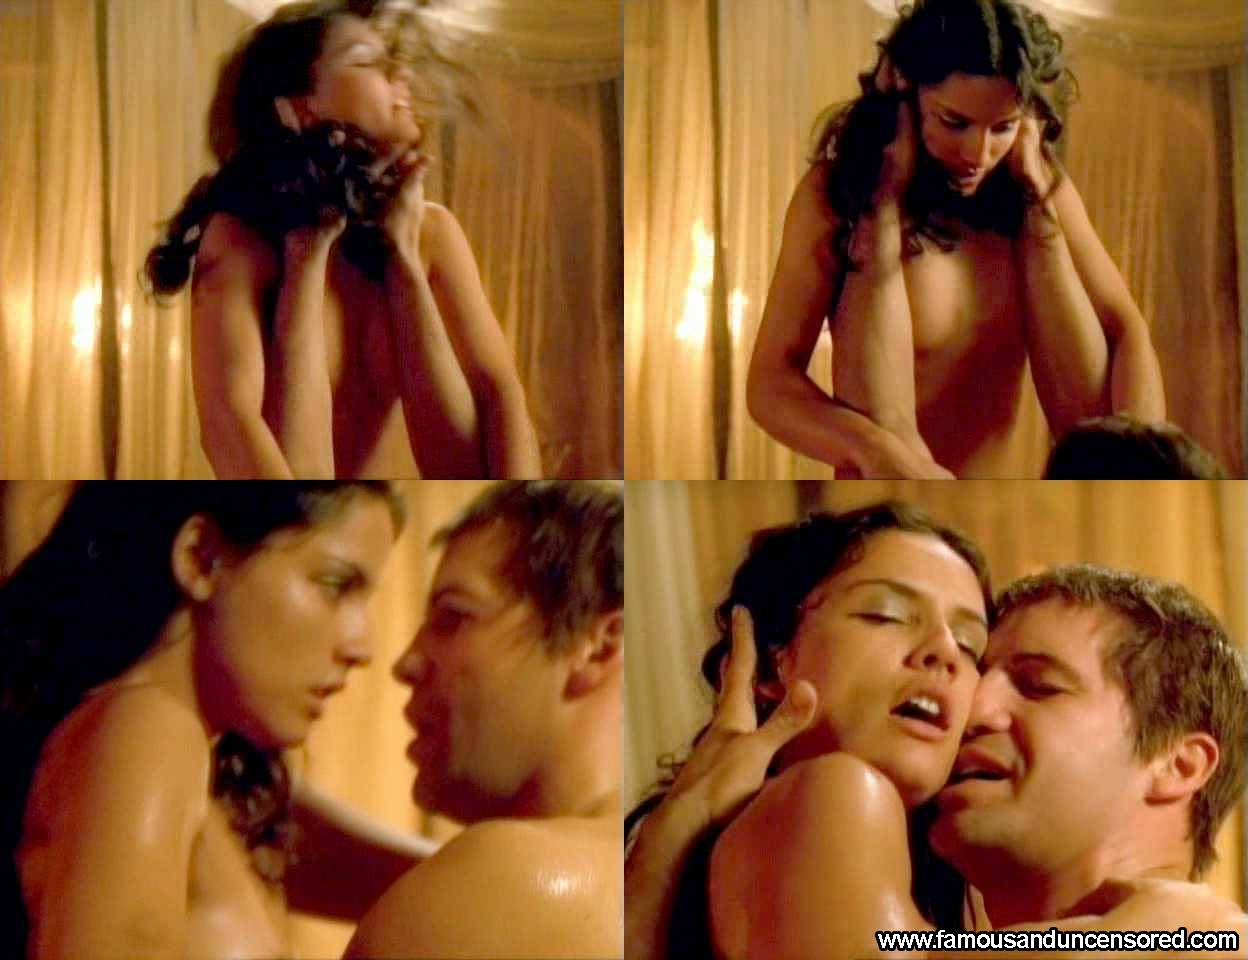 Cleopatra naked in movies